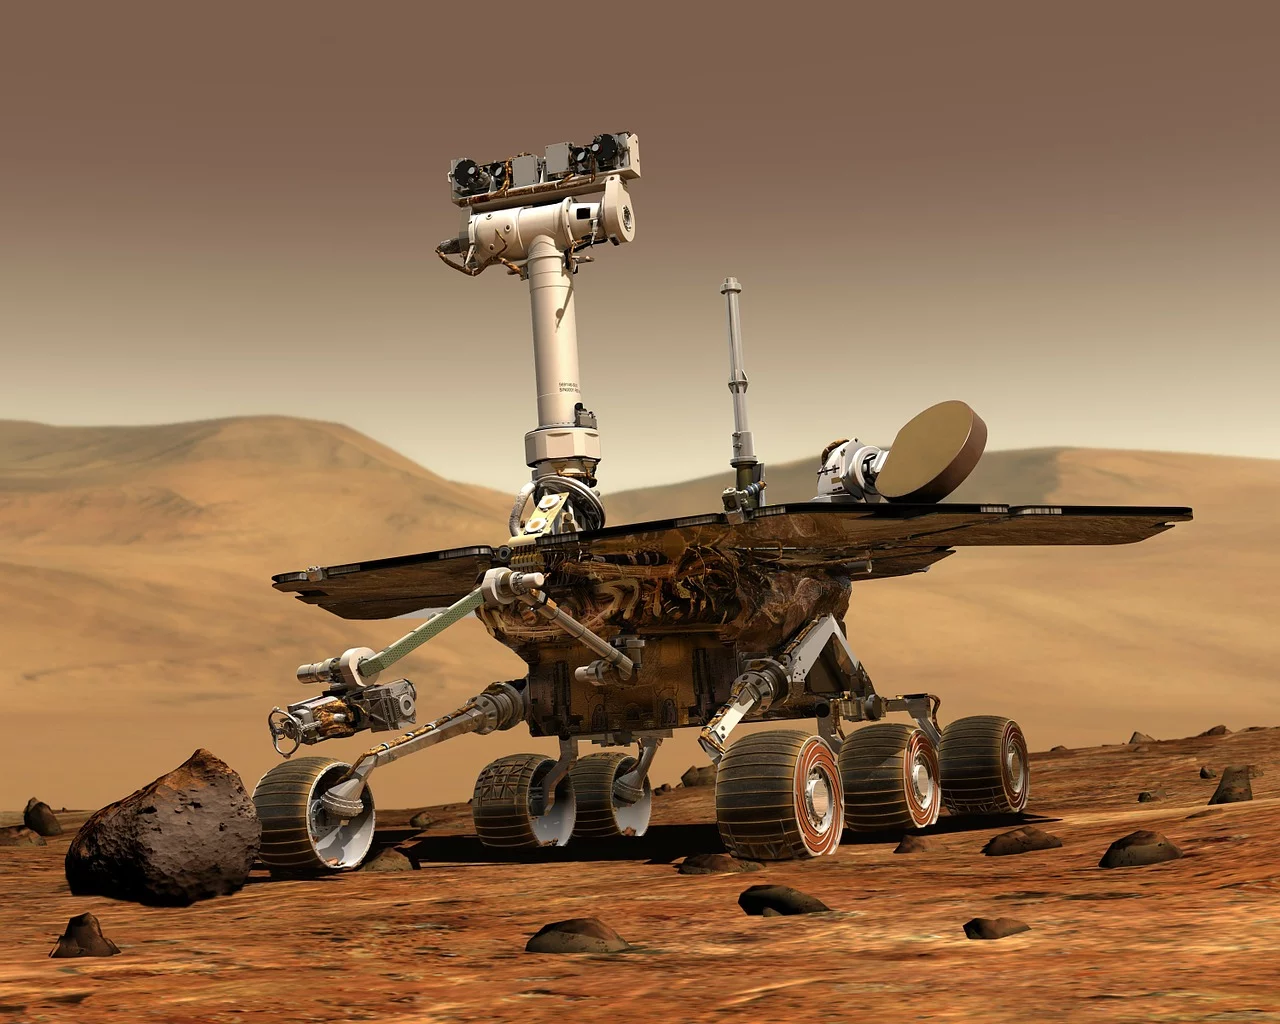 opportunity-rover-facts-stats